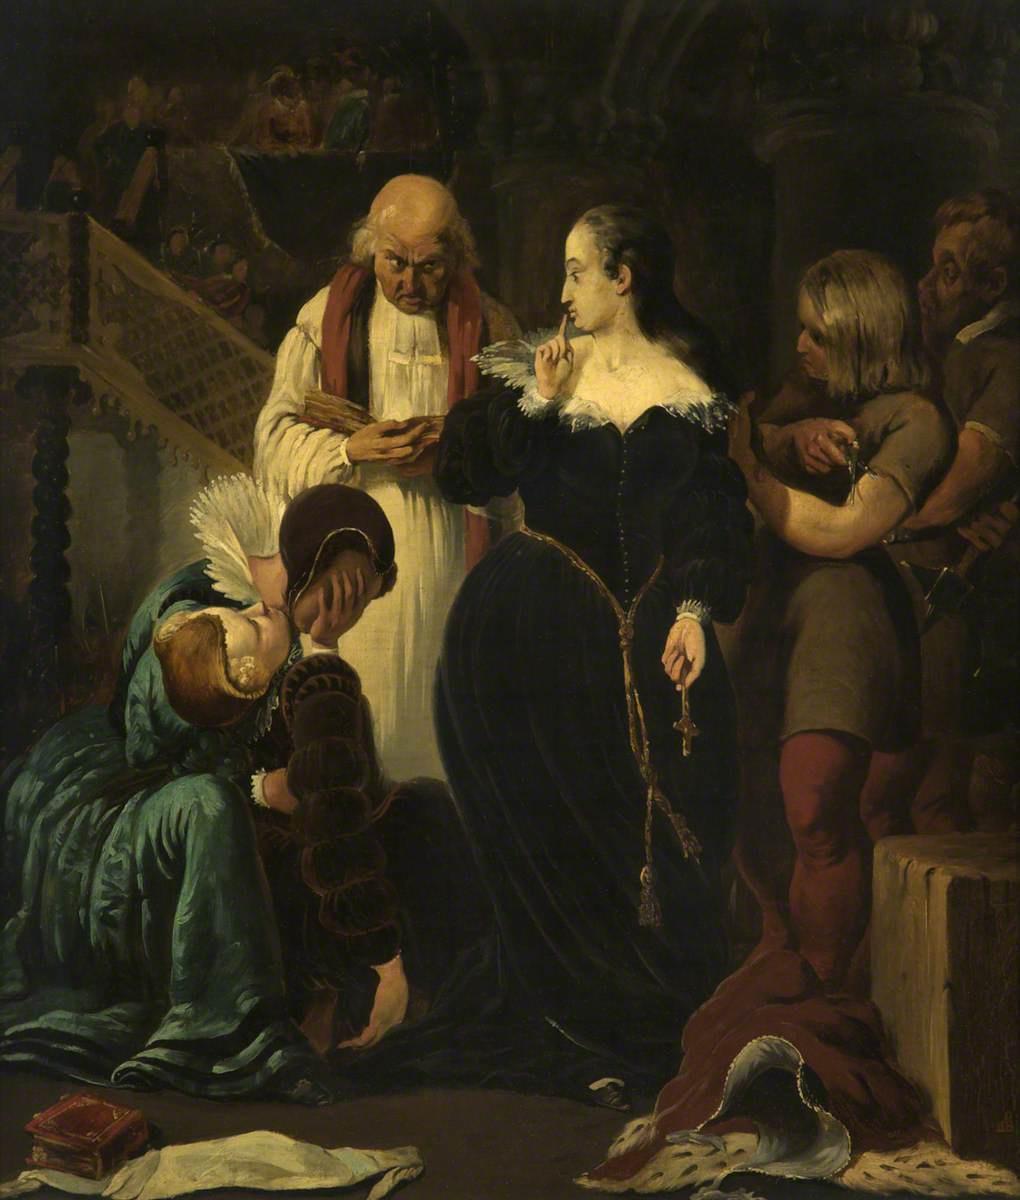 Ford Madox Brown. The execution of Mary, Queen of Scots